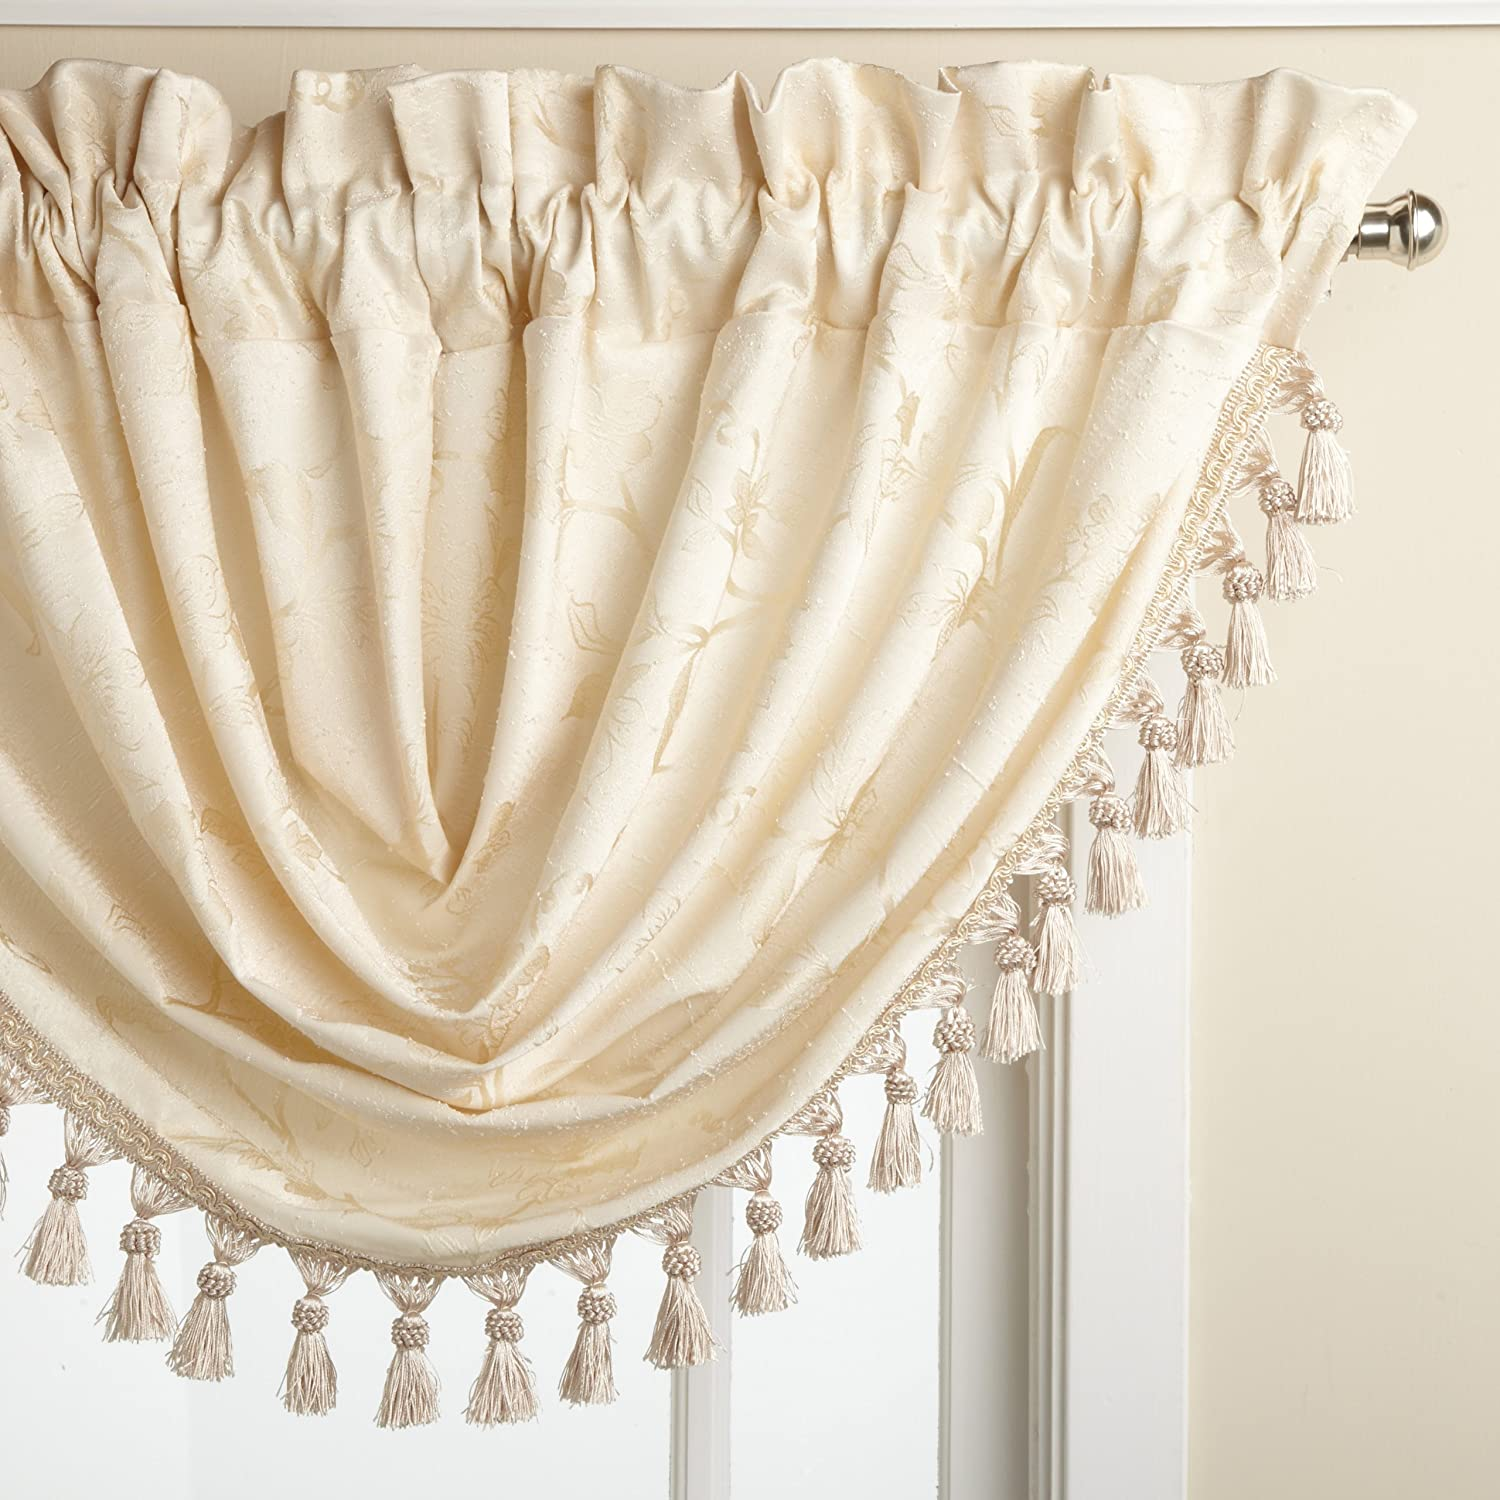 bedding palmer lined with treatments curtain duchess super toile black style floral ease valance ellis window sale ivory discounted